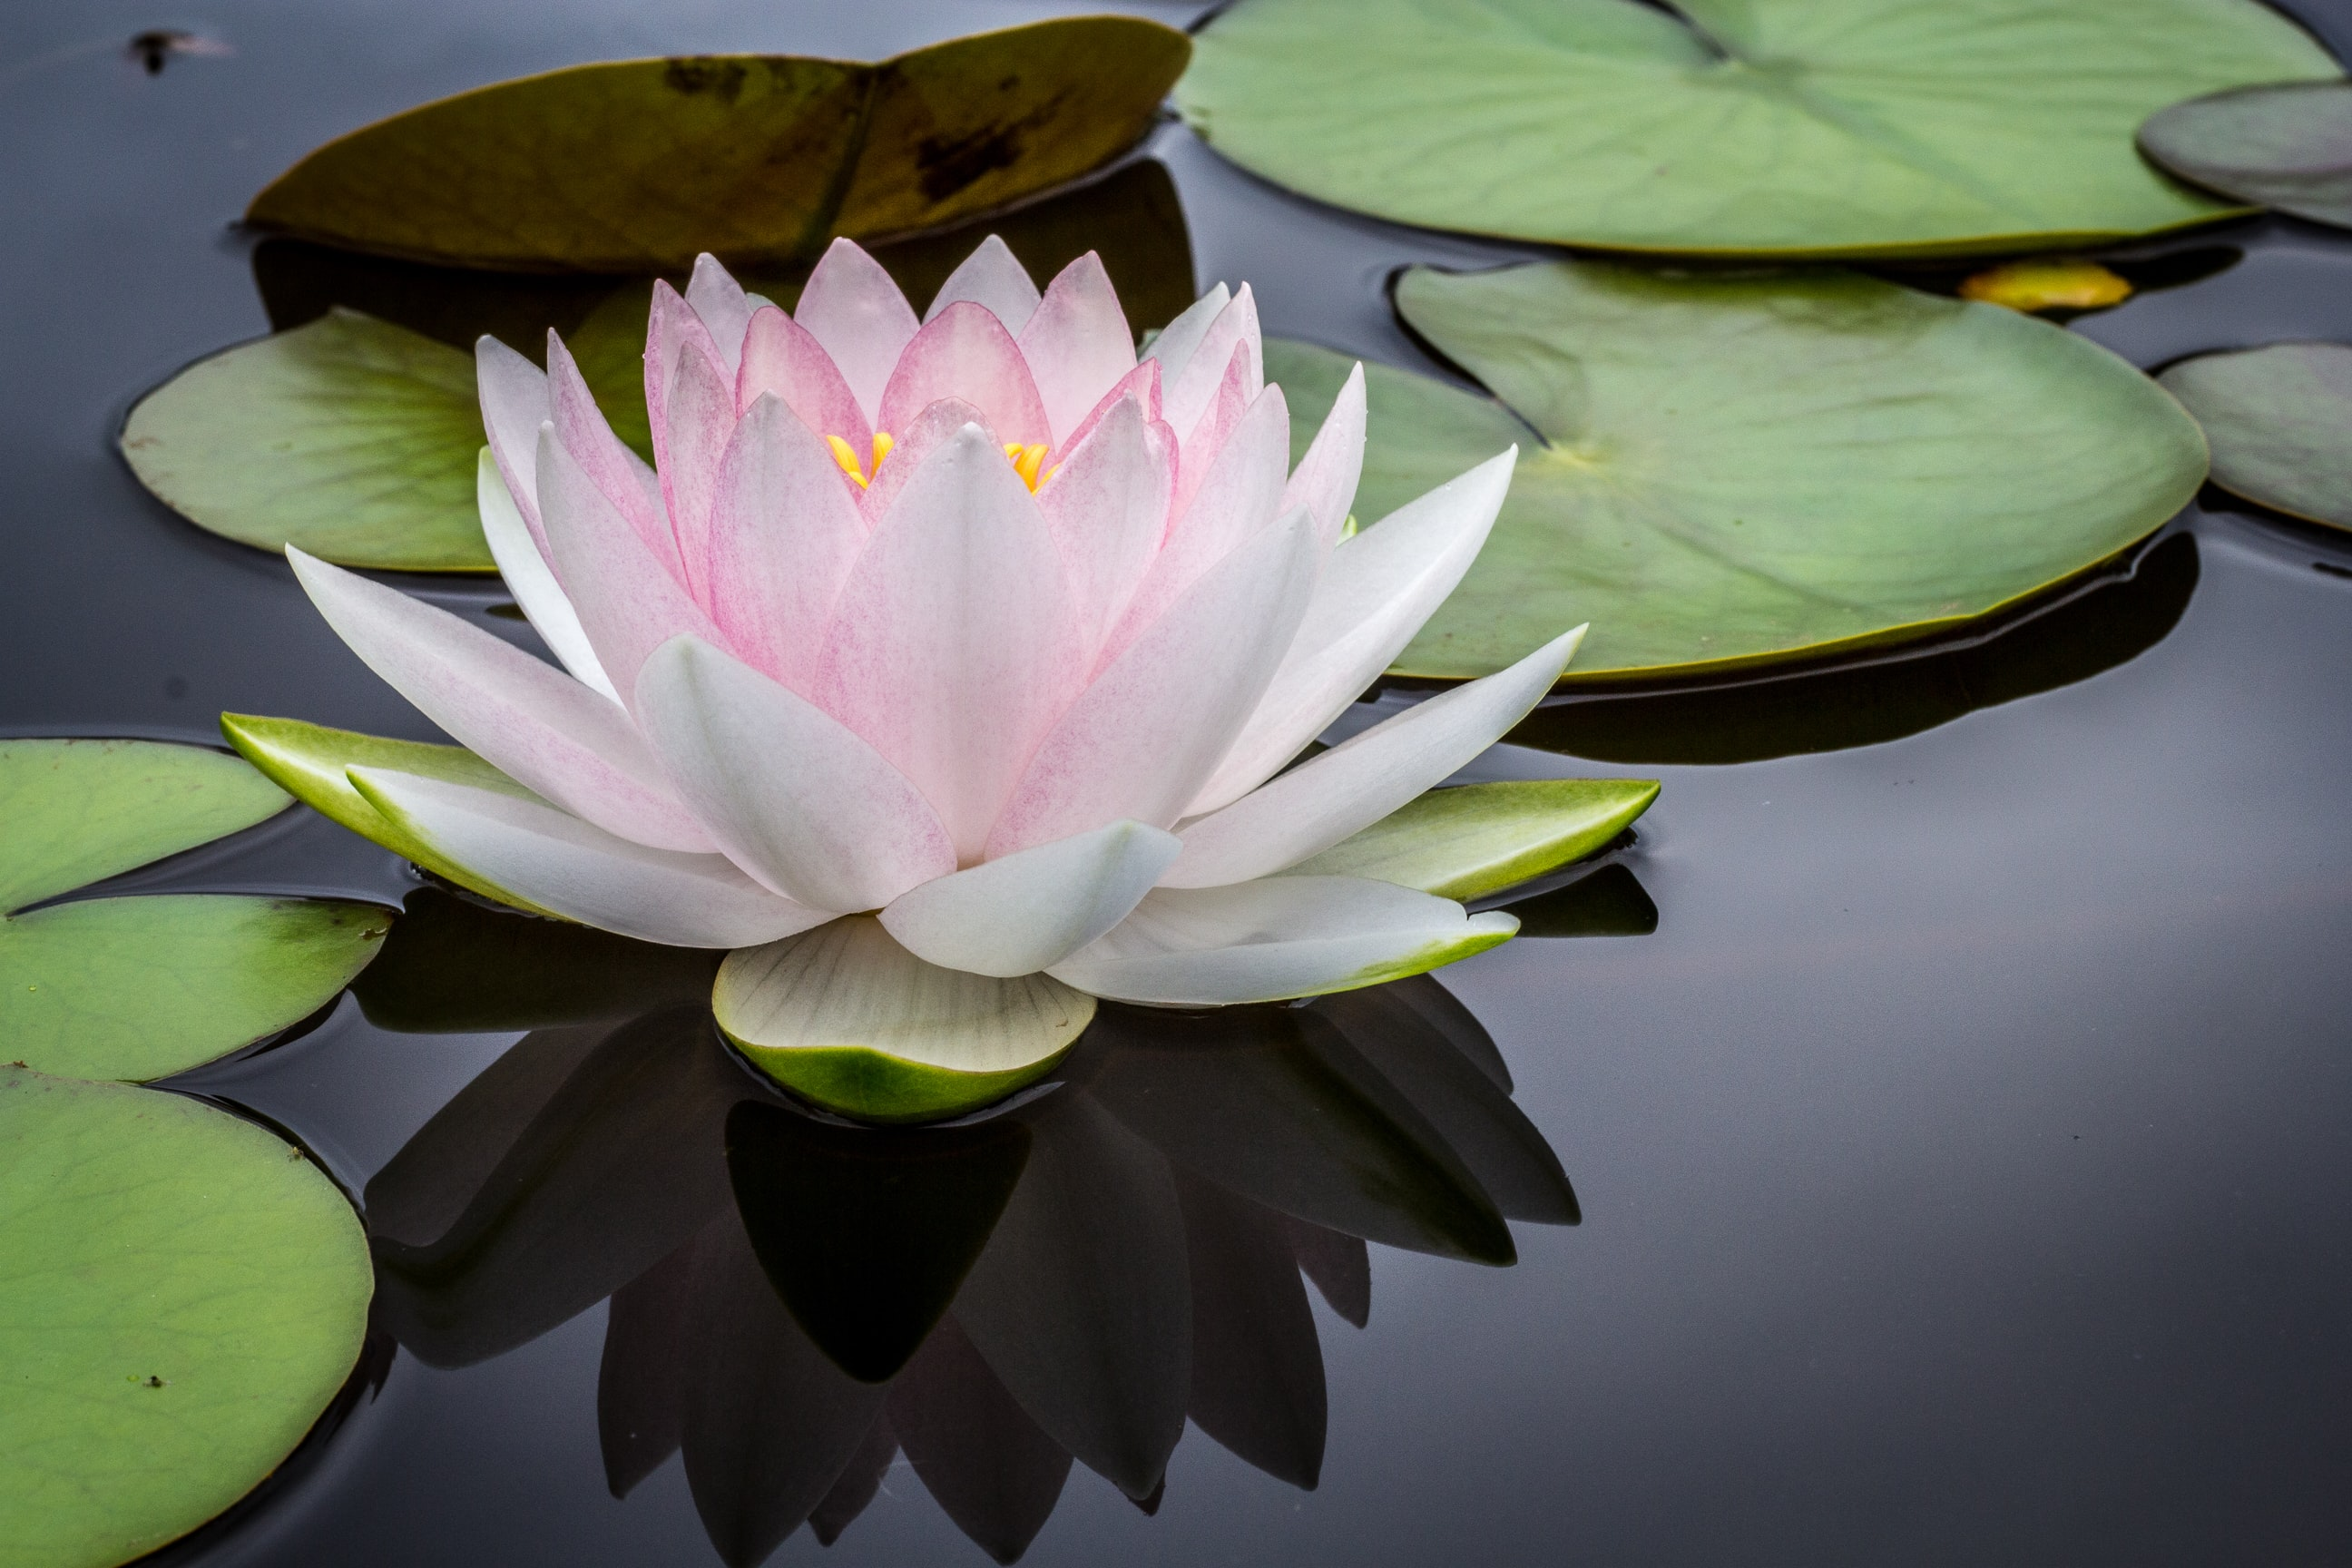 Pristine Water Lily Photo By Jay Castor Jayicastor On Unsplash